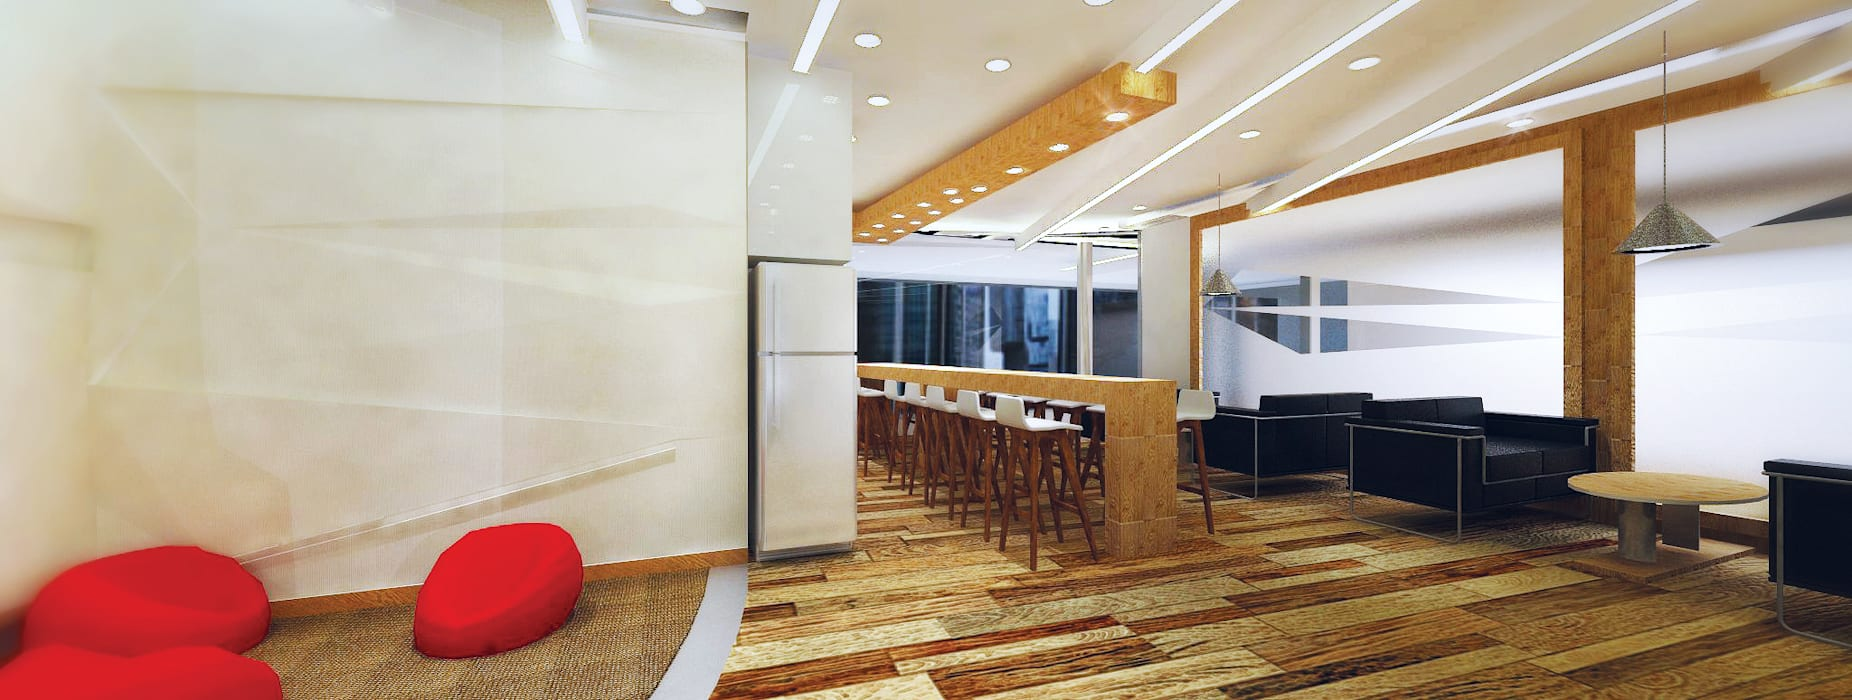 Pantry:  Study/office by Much Creative Communication Limited,